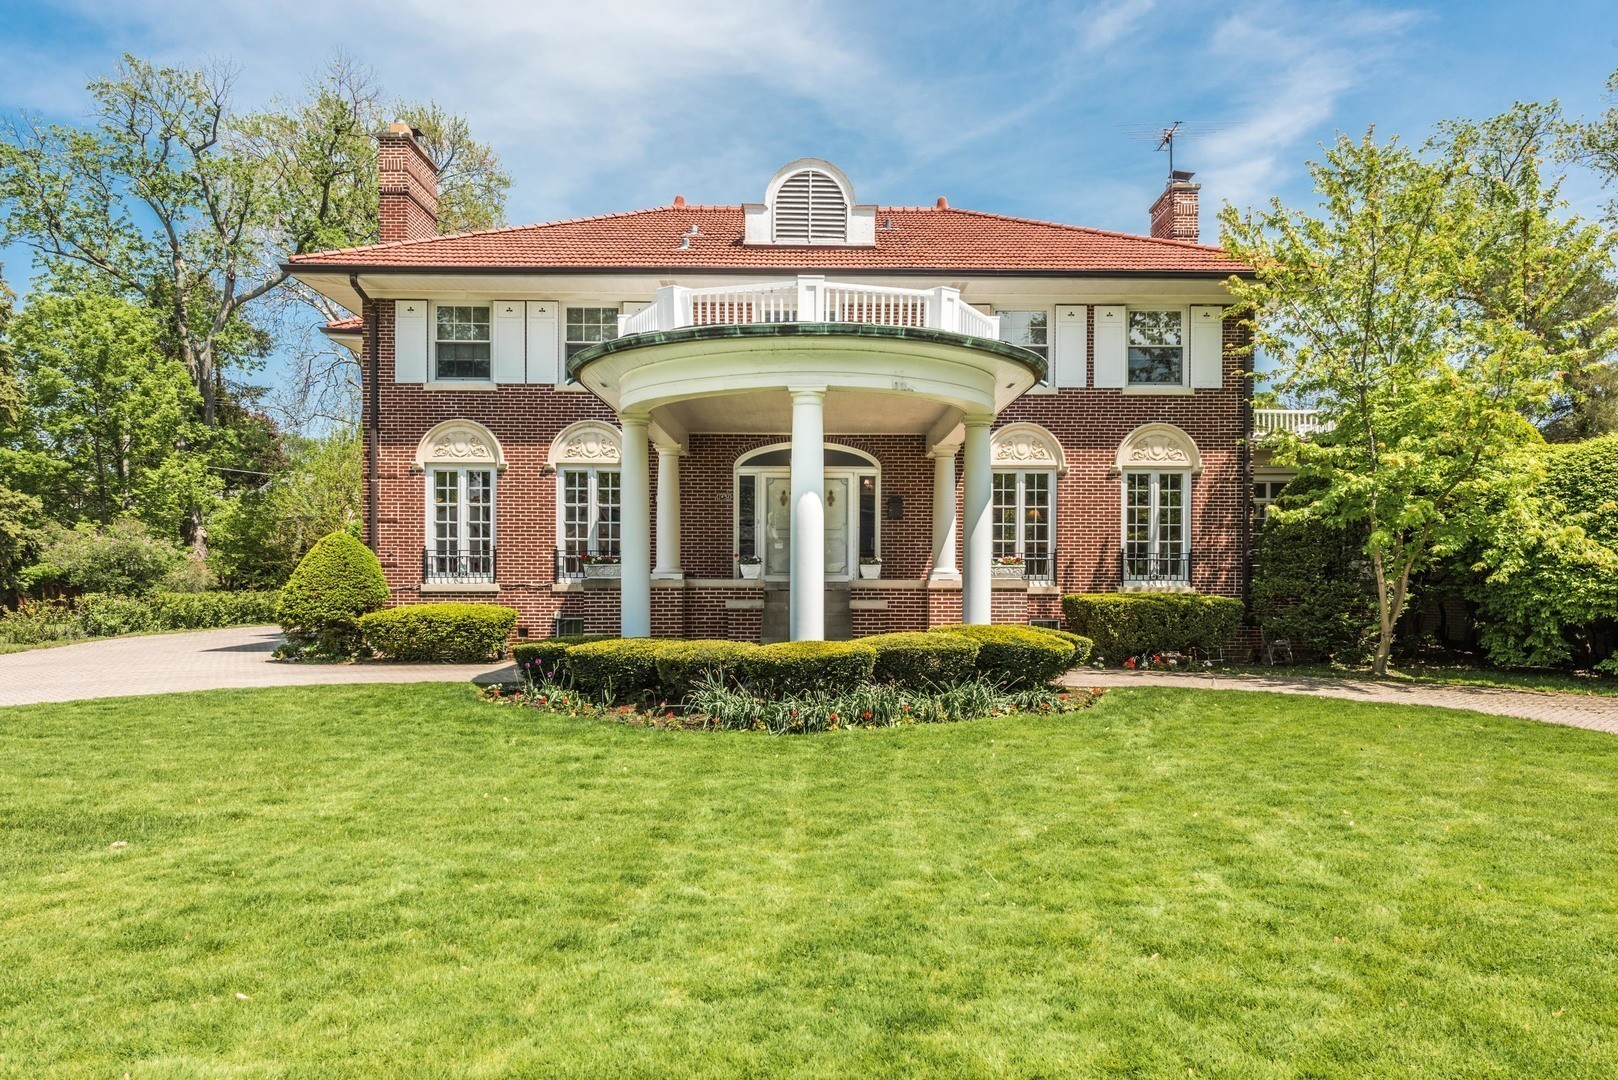 River Forest Mansion Once Owned By Chicago Mob Figure Tony